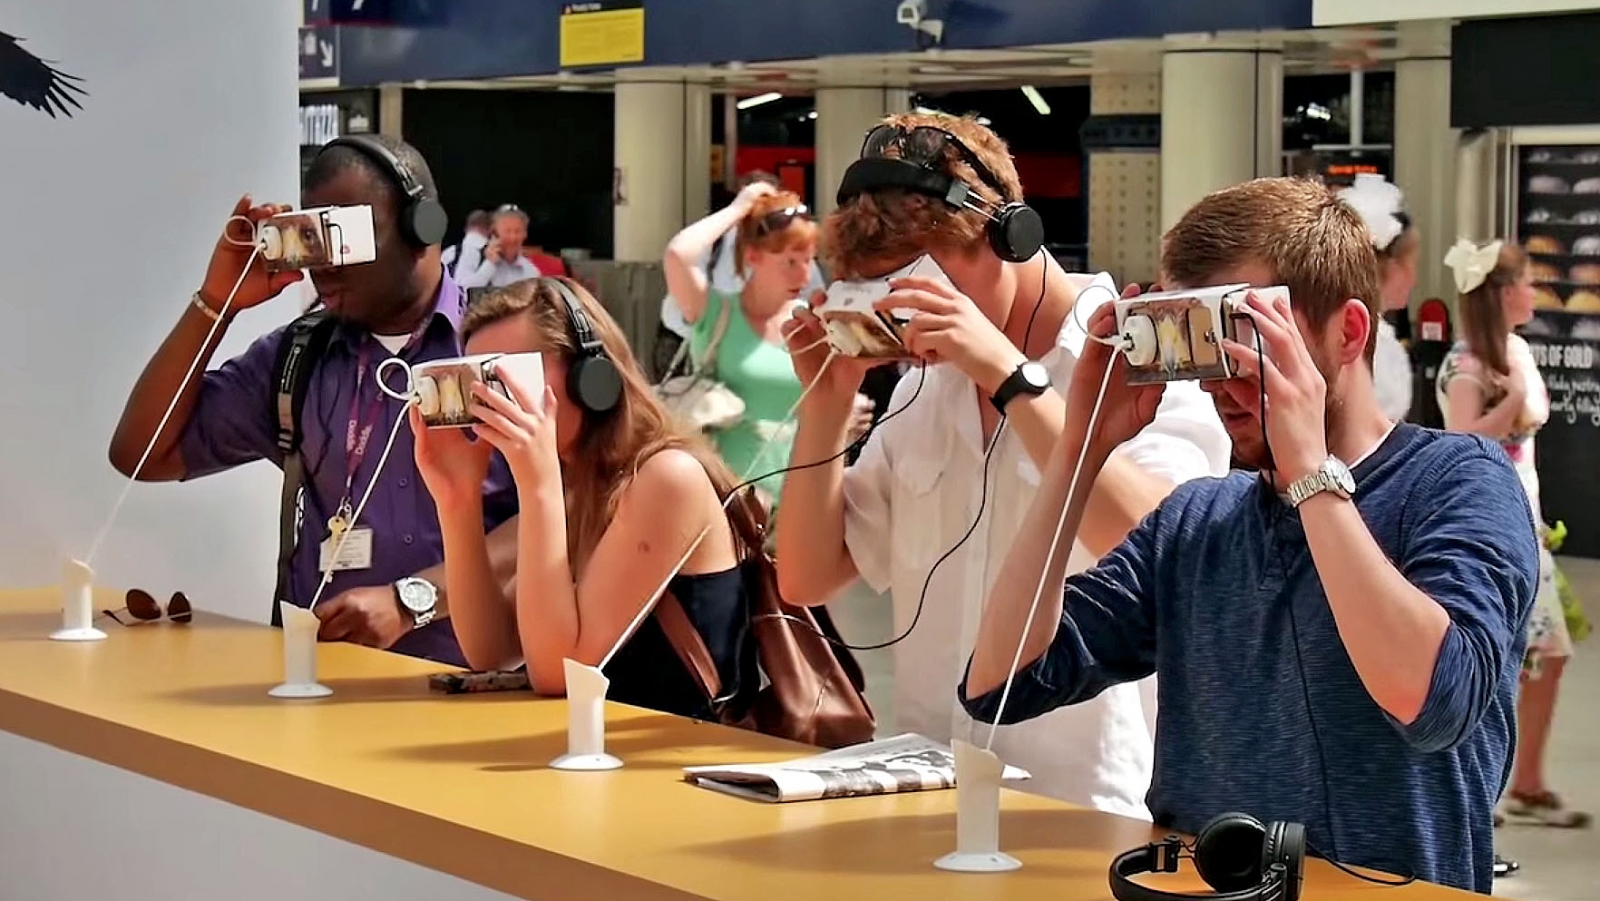 Virtual reality headsets could explode in popularity